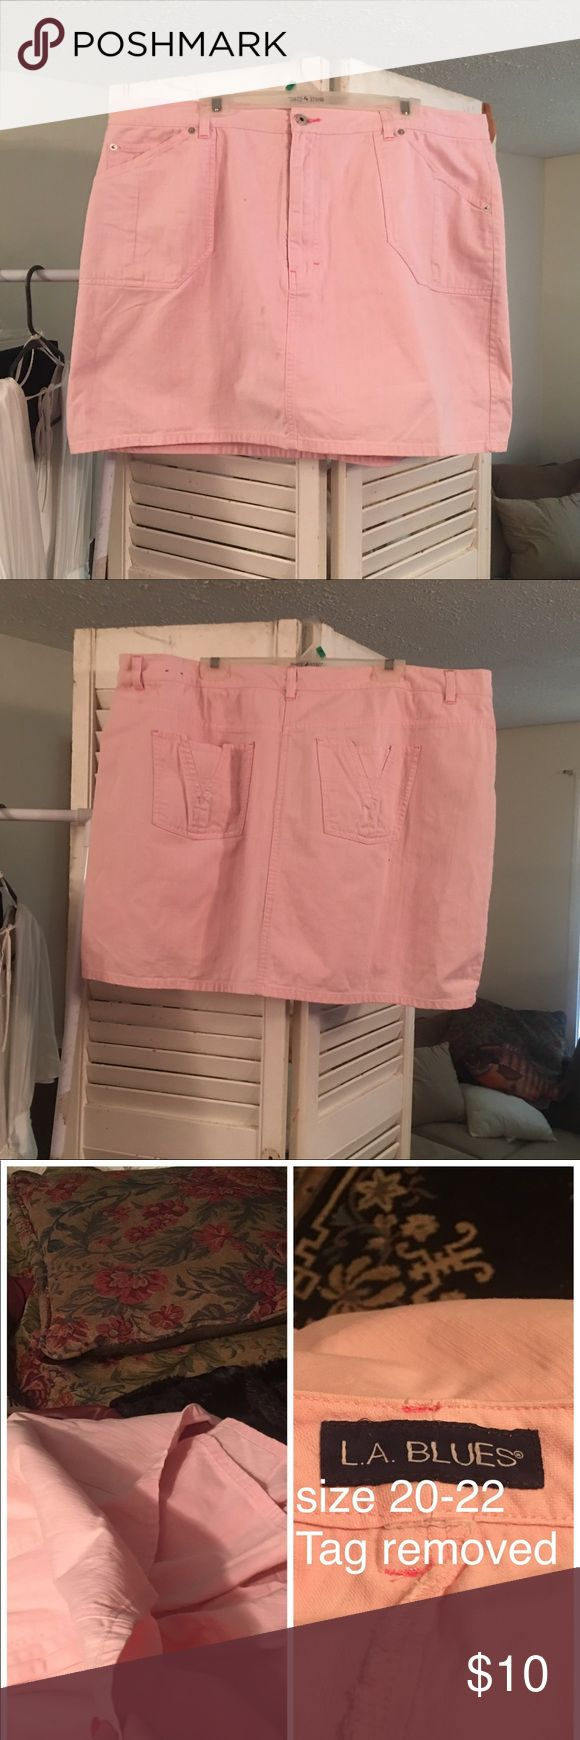 "SKORT/Shorts PINK-JEAN Material Size 20 L A BLUES L A BLUES SKORT -Pink Skirt Front and Back with SHORTS Concealed SLIMMING can't beat this Skort Convience with Style looks like a Mini Skirt without the fear of a ""Money Shot"" Size 20-22 L A BLUES Shorts Skorts"